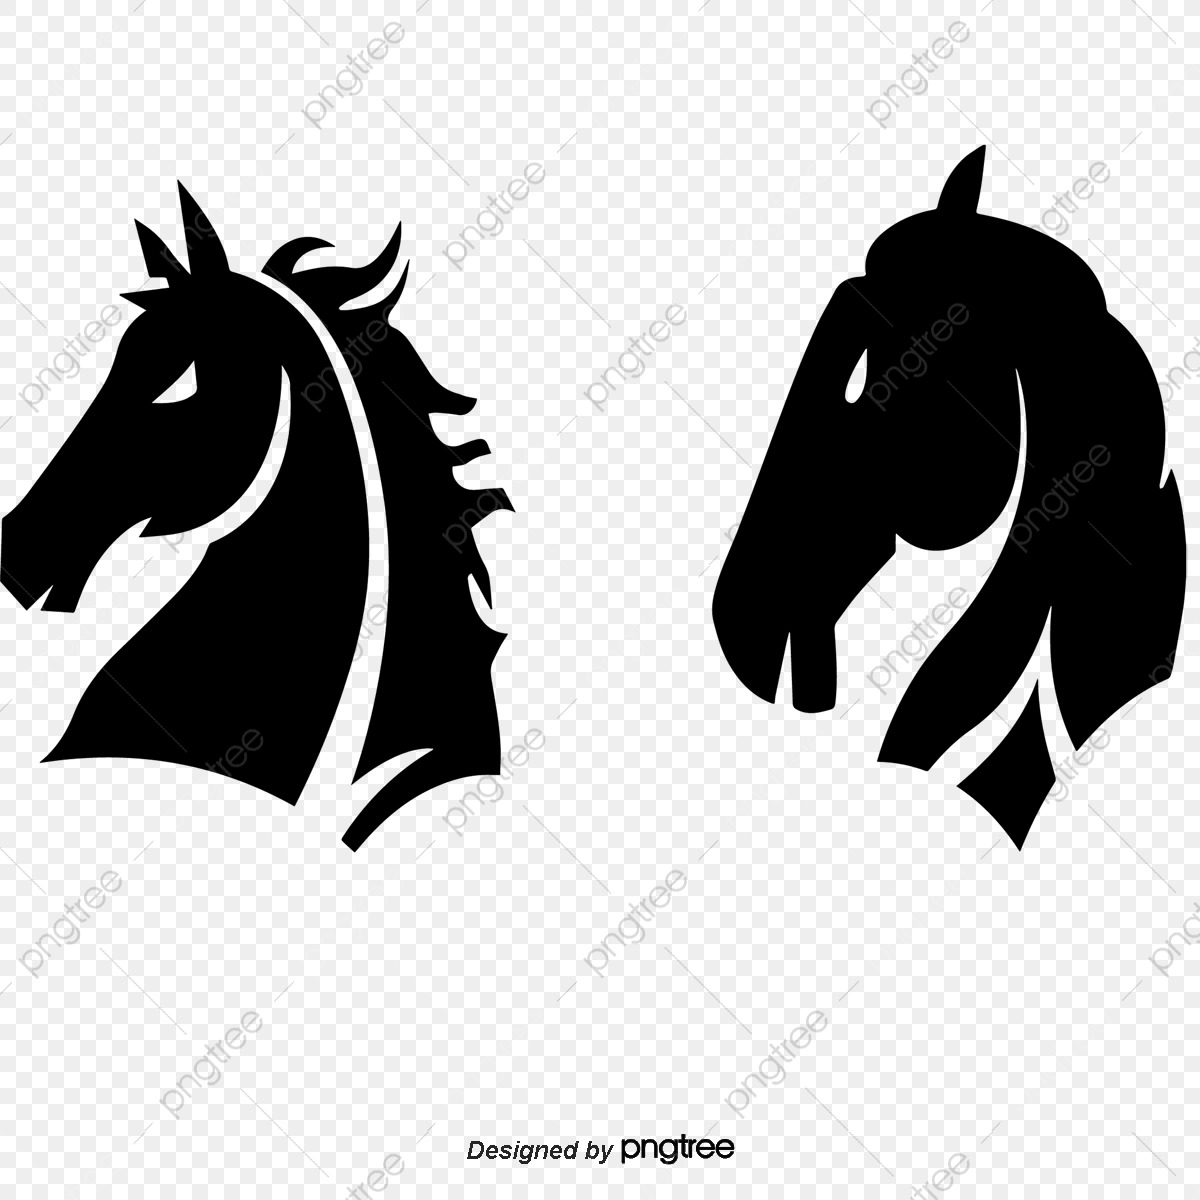 Vector Black Horse Horse Clipart Horsehead Vector Horse Png And Vector With Transparent Background For Free Download